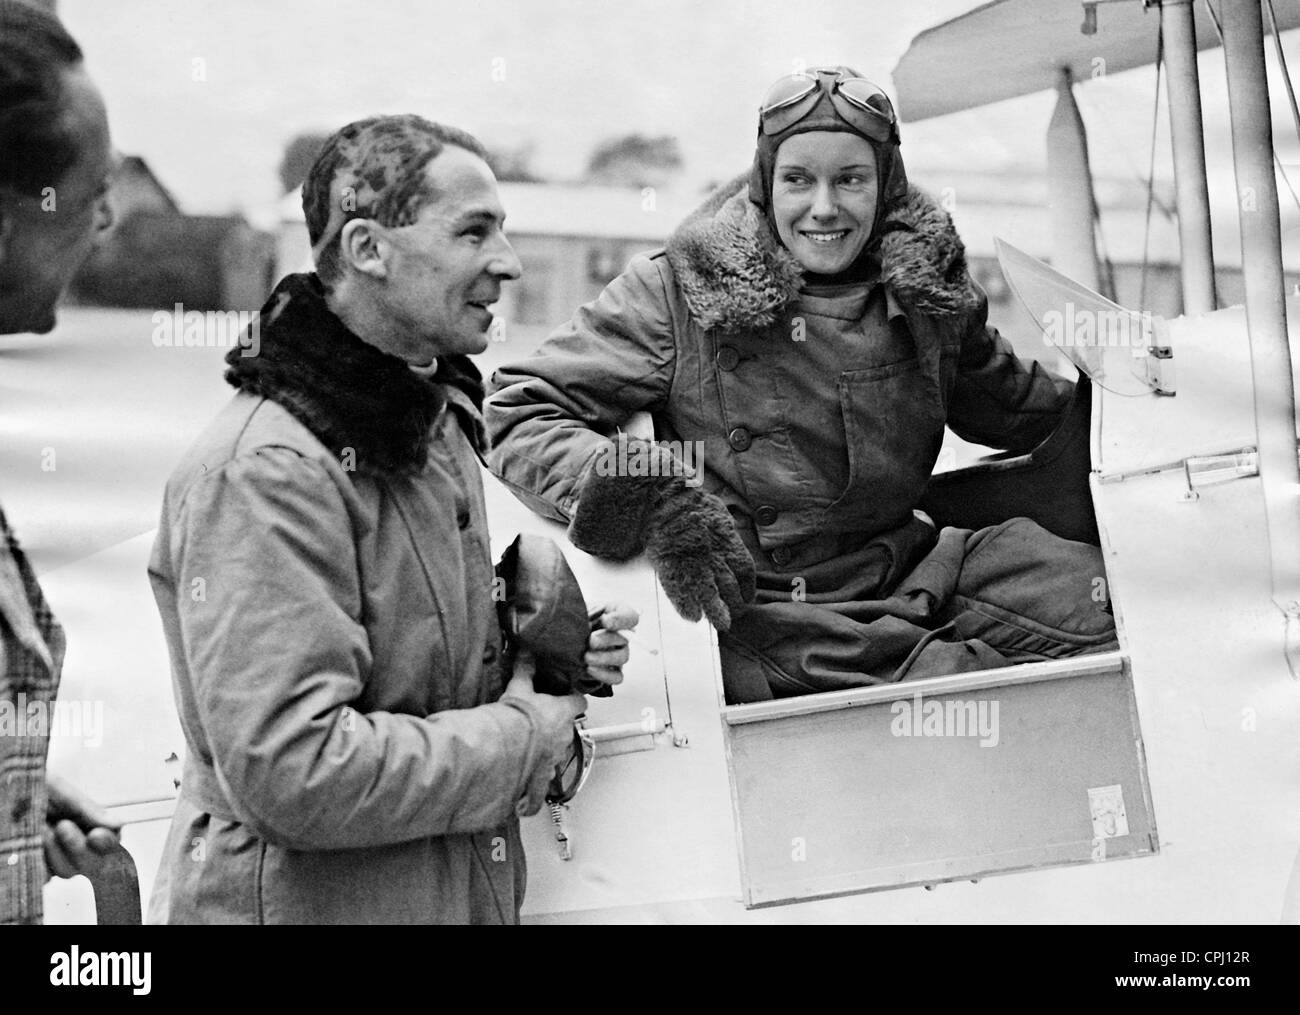 Jean Batten and Edward Walter, 1935 - Stock Image